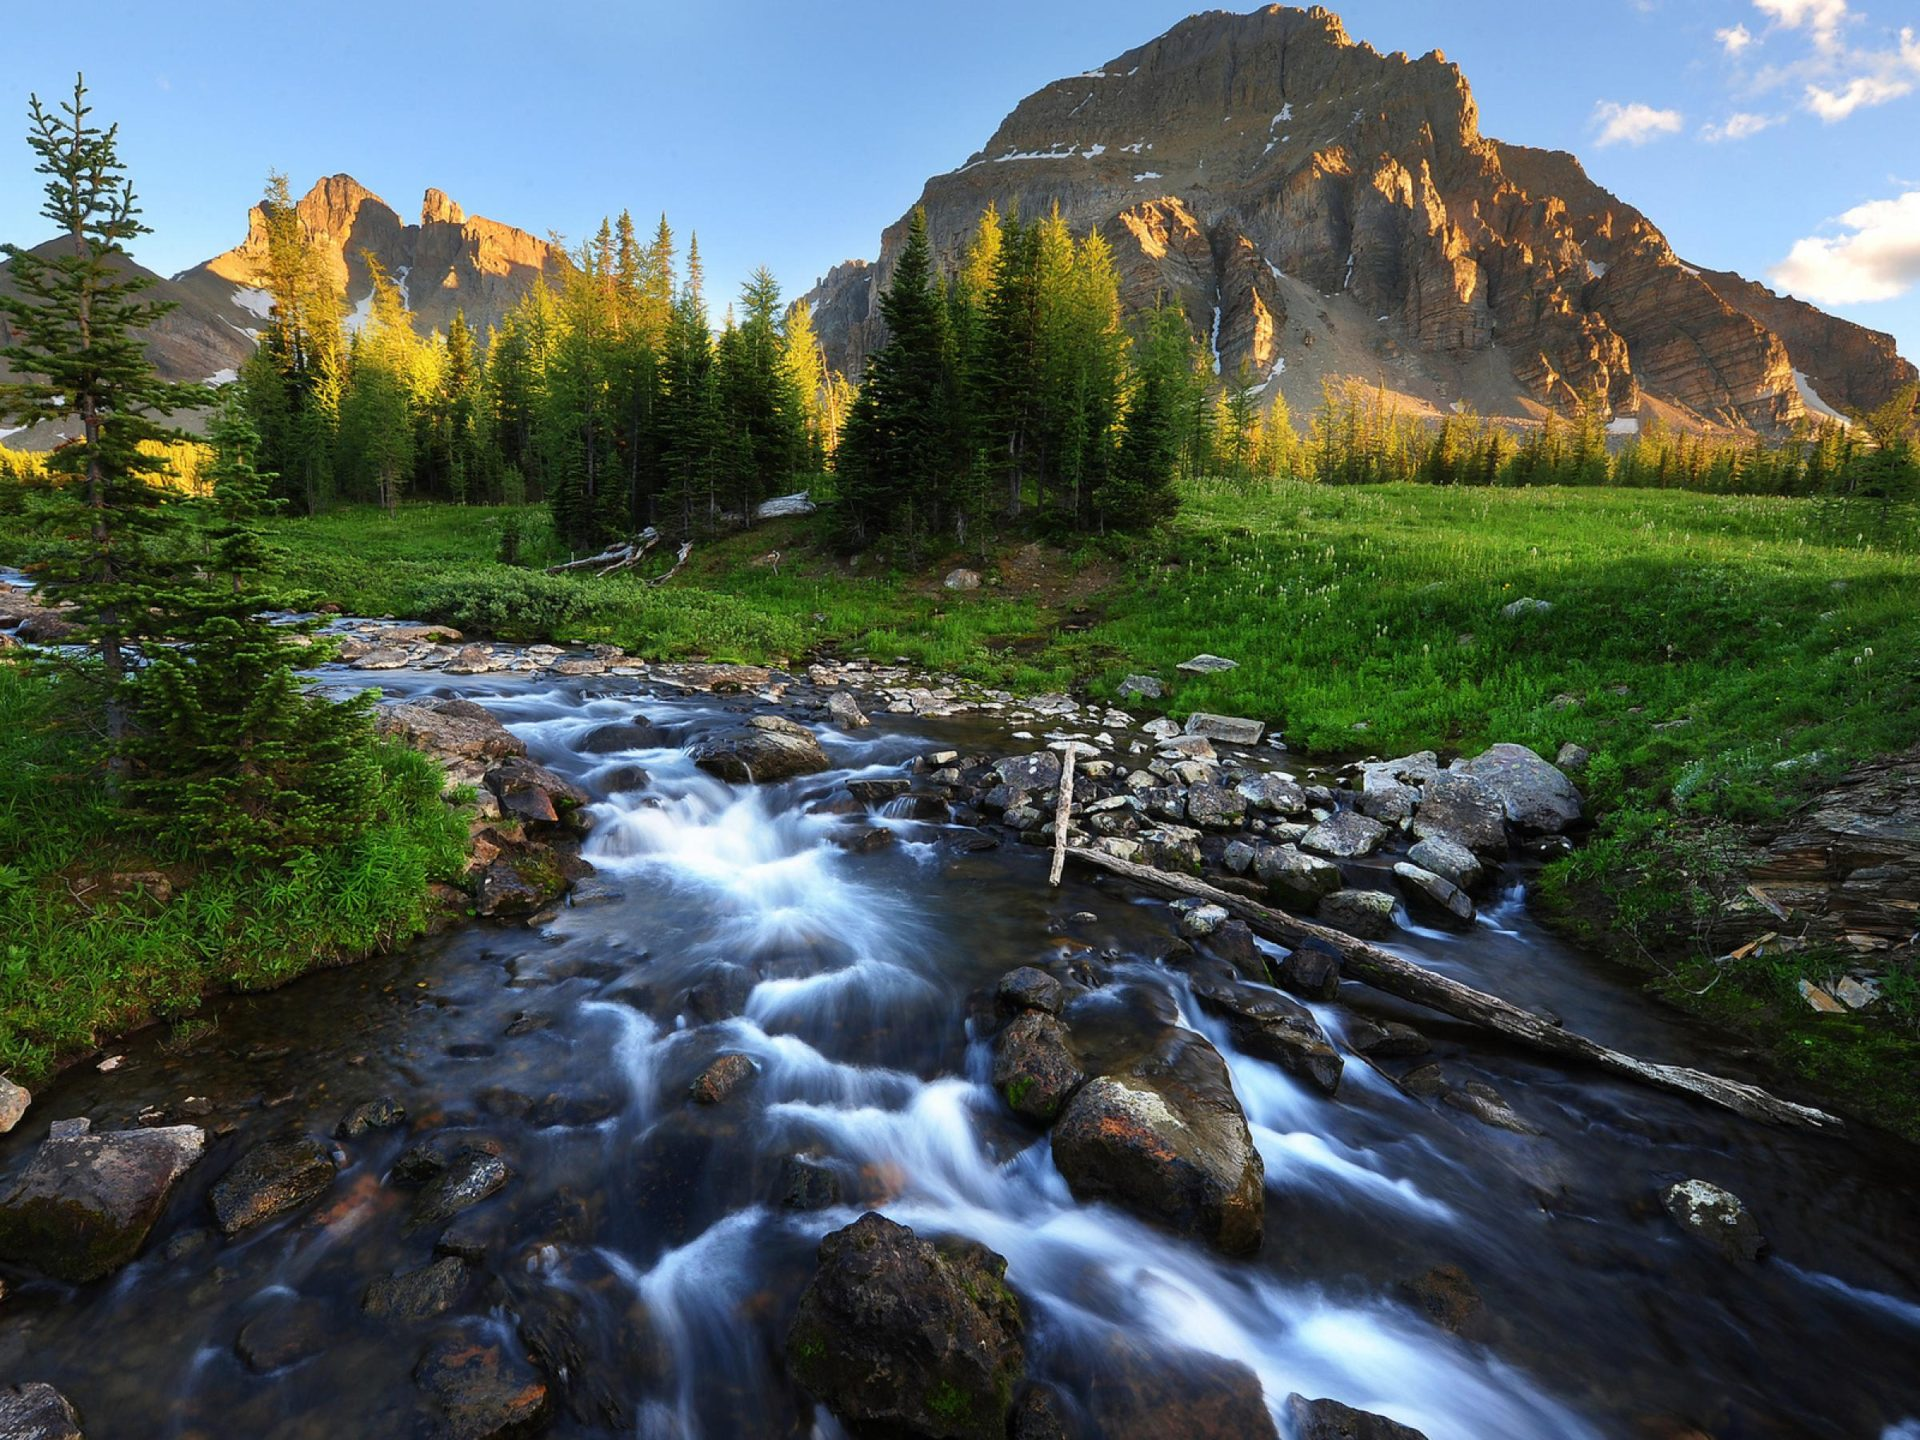 Fall Aspens Wallpaper Small Mountain River Stones Gravel Meadow With Green